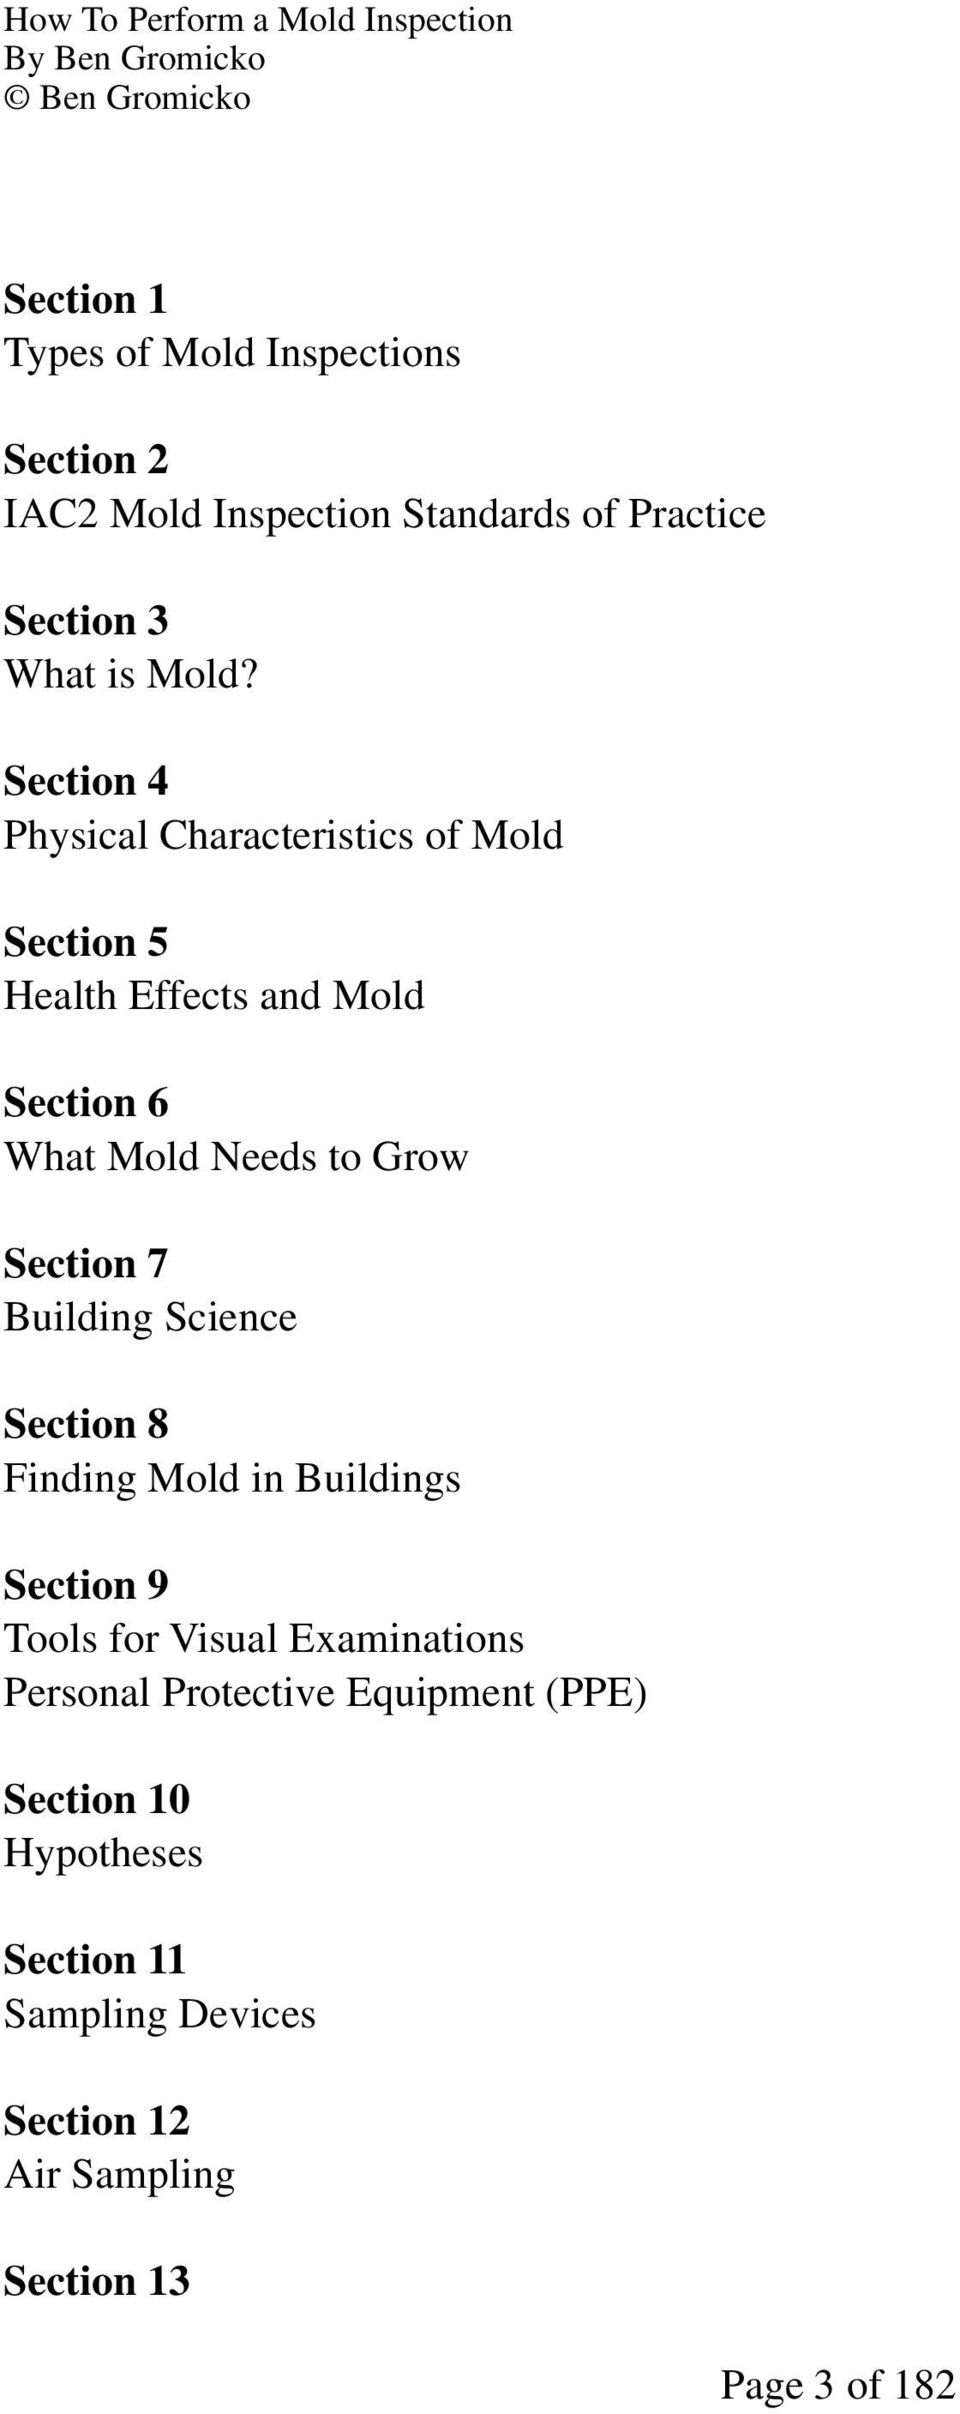 Section 7 Building Science Section 8 Finding Mold in Buildings Section 9 Tools for Visual Examinations Personal